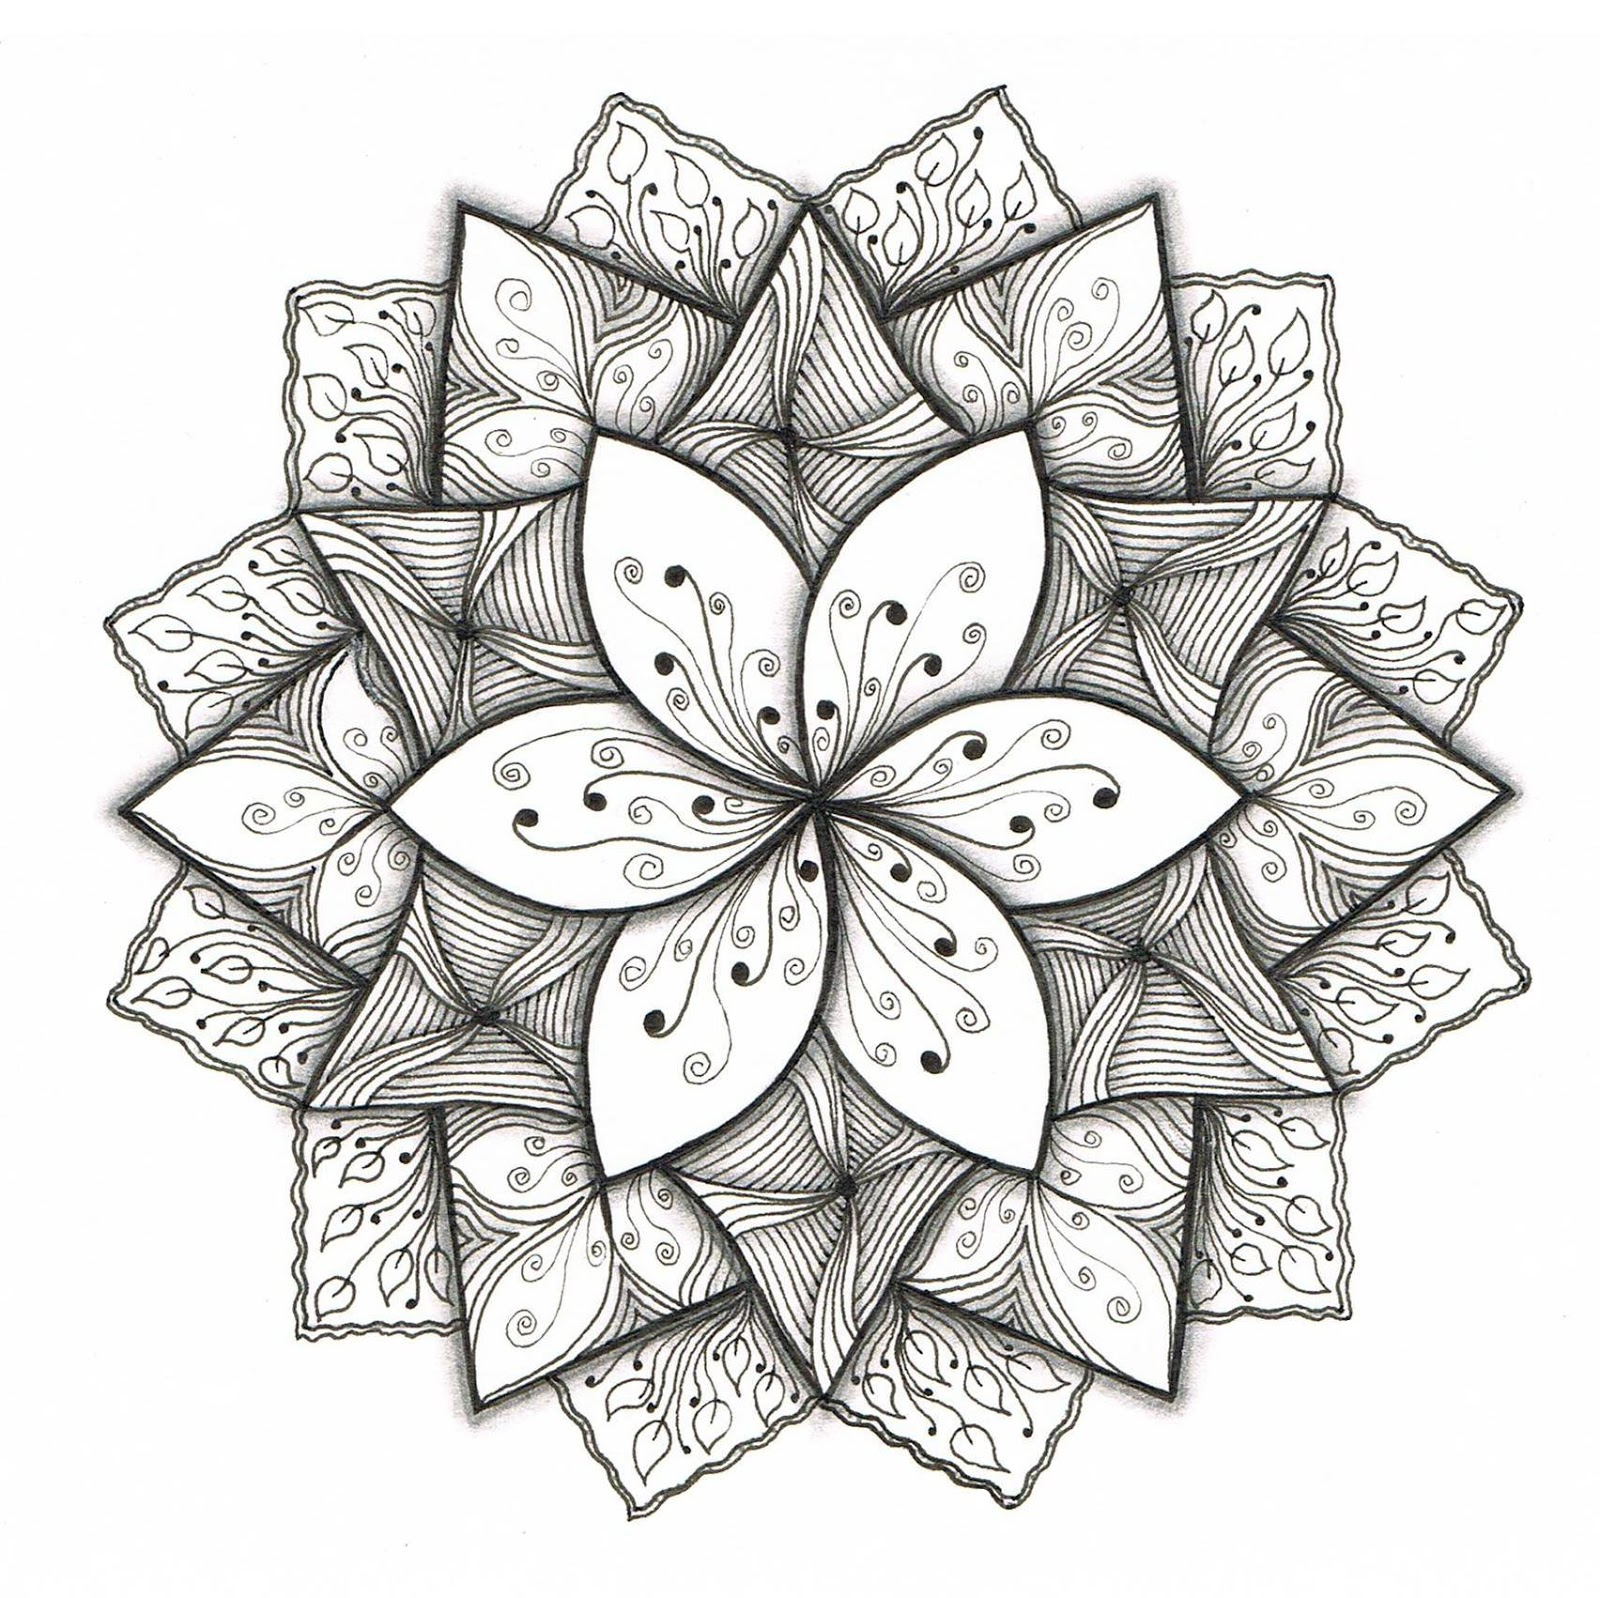 1600x1598 Simple And Easy Designs Draw On Paper Simple Flower Designs